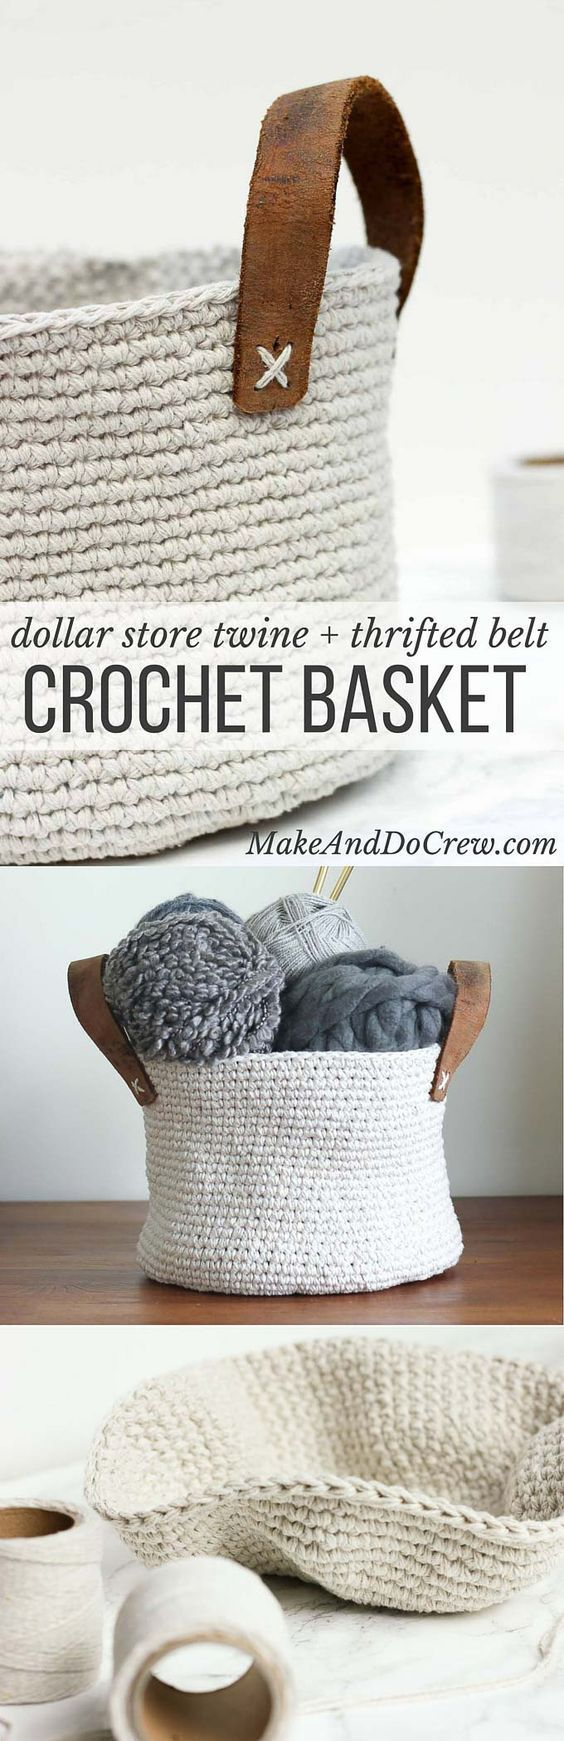 Combine cheap utilitarian twine (from Dollar Tree!) and a thrifted leather belt to create a raw, yet sophisticated home decor piece a la West Elm or Anthropologie. This free crochet basket pattern is exceptionally easy to make with only single crochet stitches and can be customized to any size. Click for the free pattern and photo tutorial.: